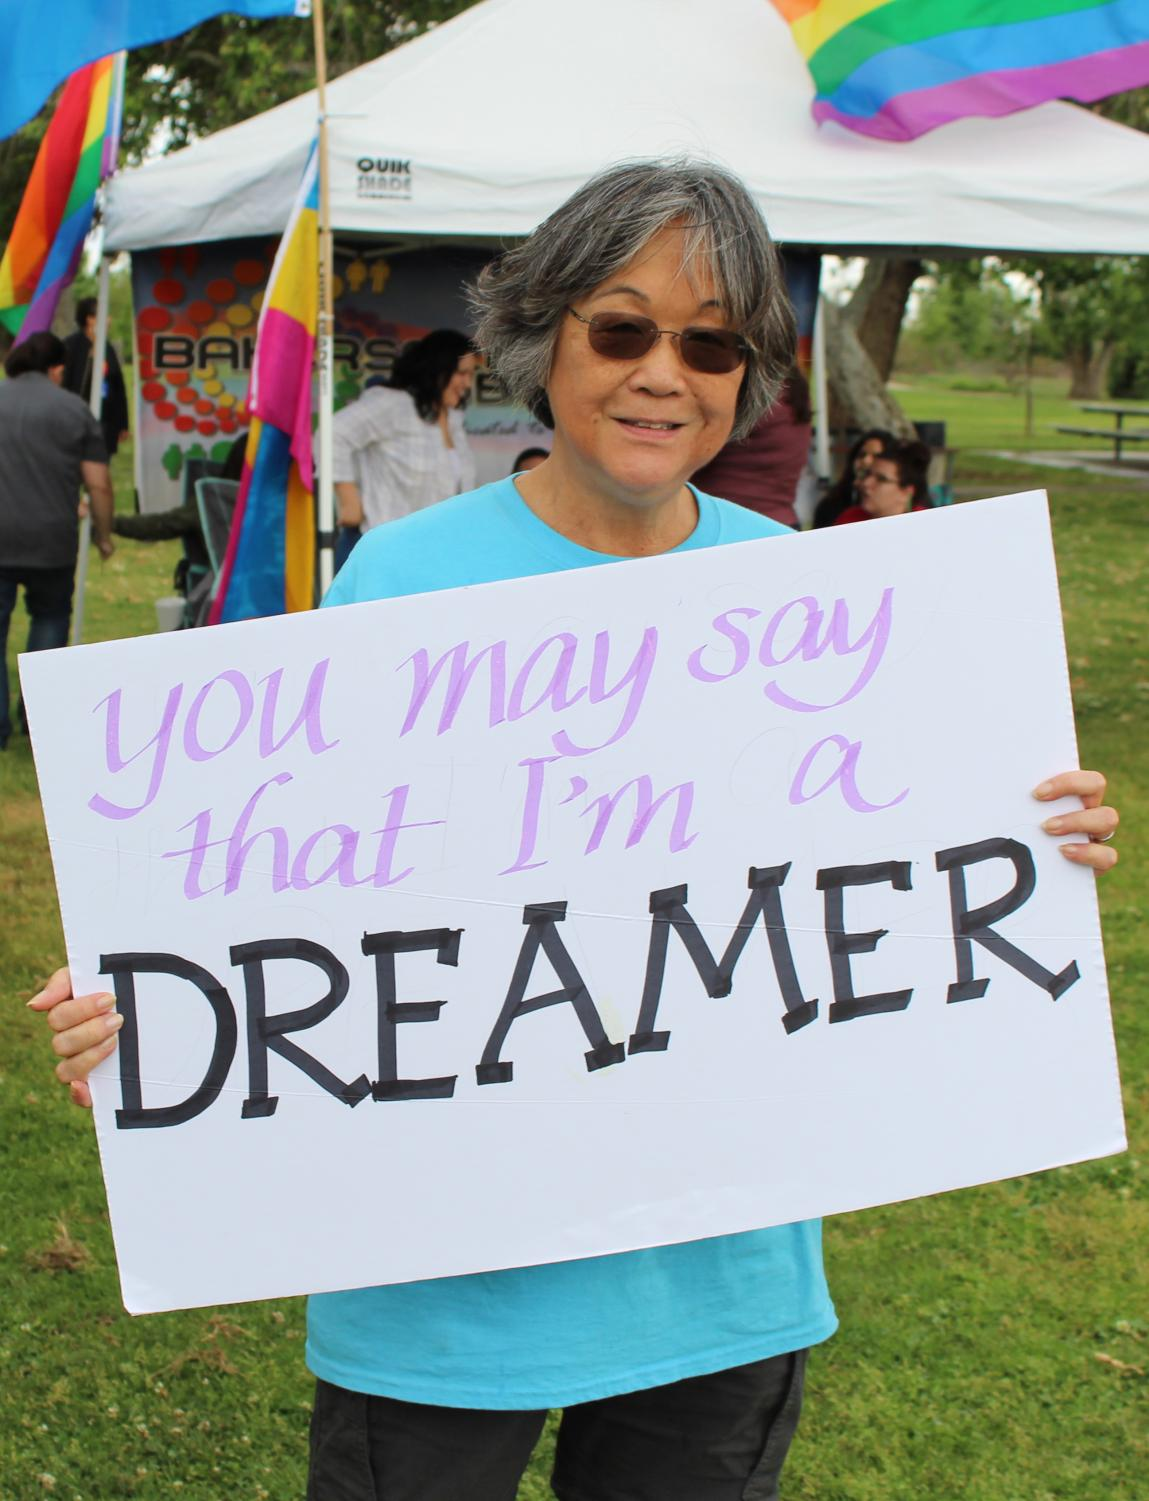 Sara Pettiford shows support at the rally commemorating MLK for the 50th anniversary of his death.